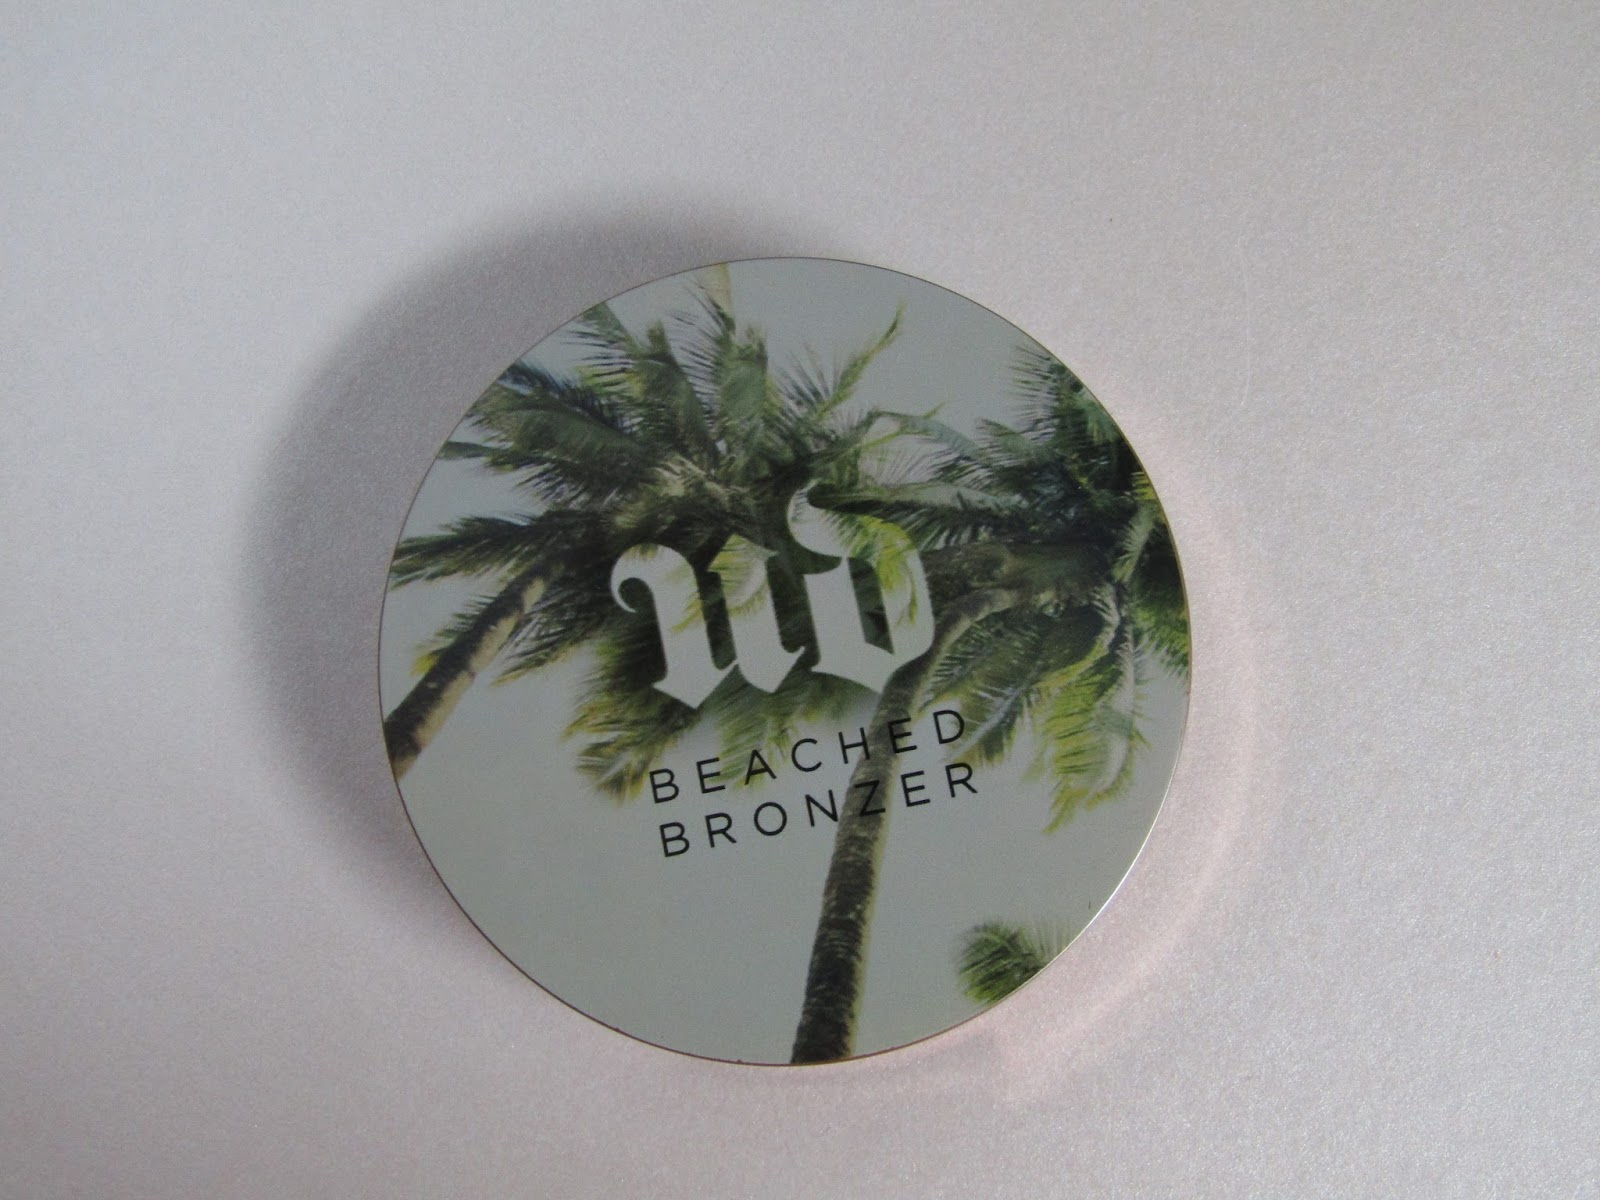 89cb1d6a1d5c Urban Decay s beached bronzer is my favorite bronzer of all time! I  understand that it is a bit on the pricey side at £20 but you can t go  wrong!